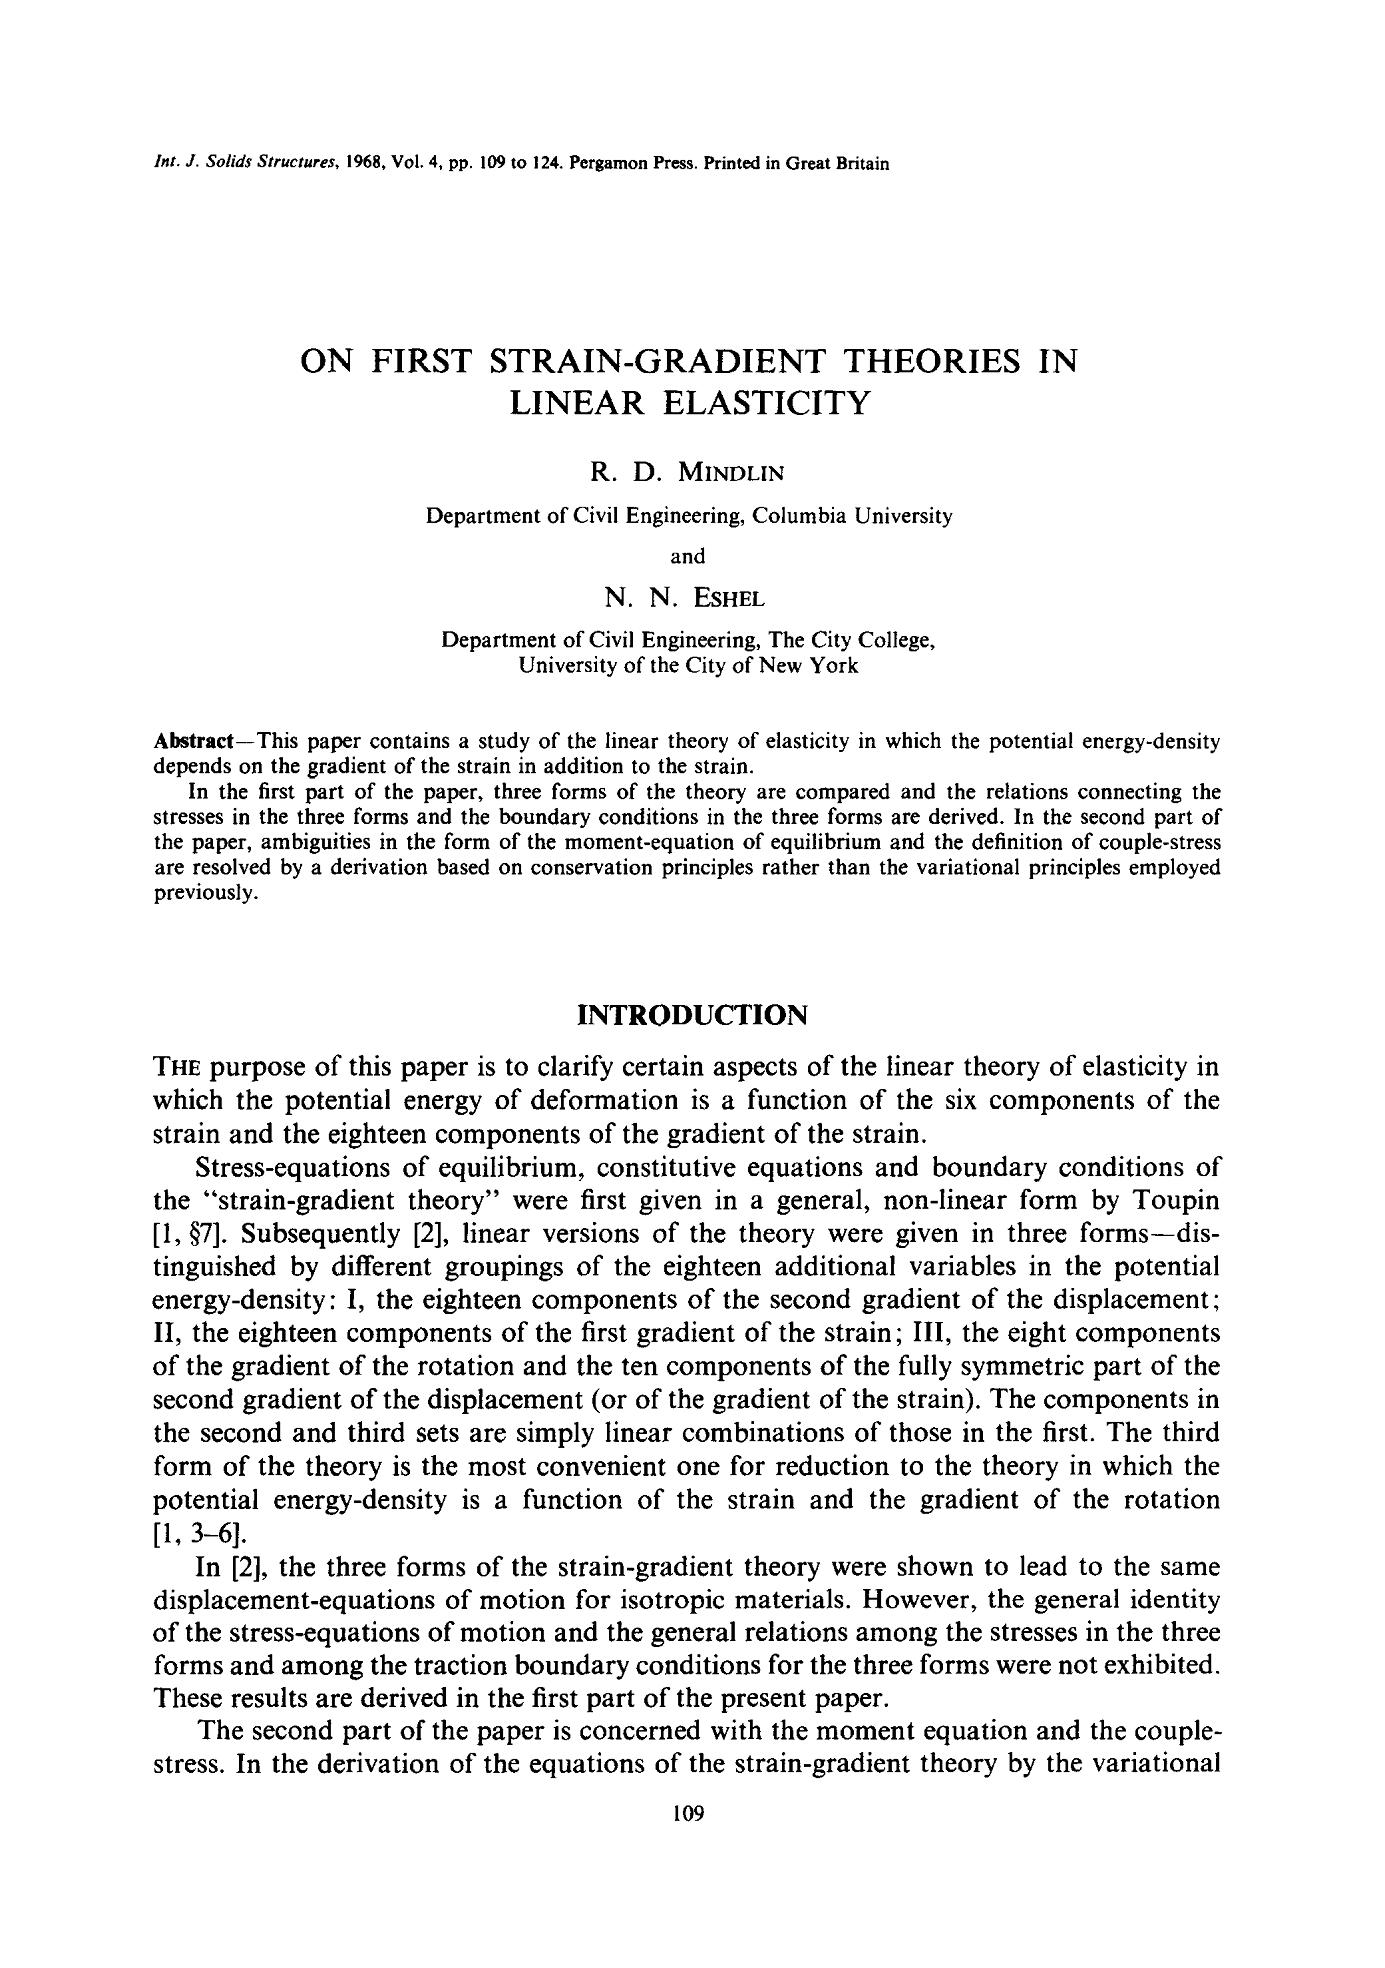 ON FIRST STRAIN-GRADIENT THEORIES IN LINEAR ELASTICITY 16